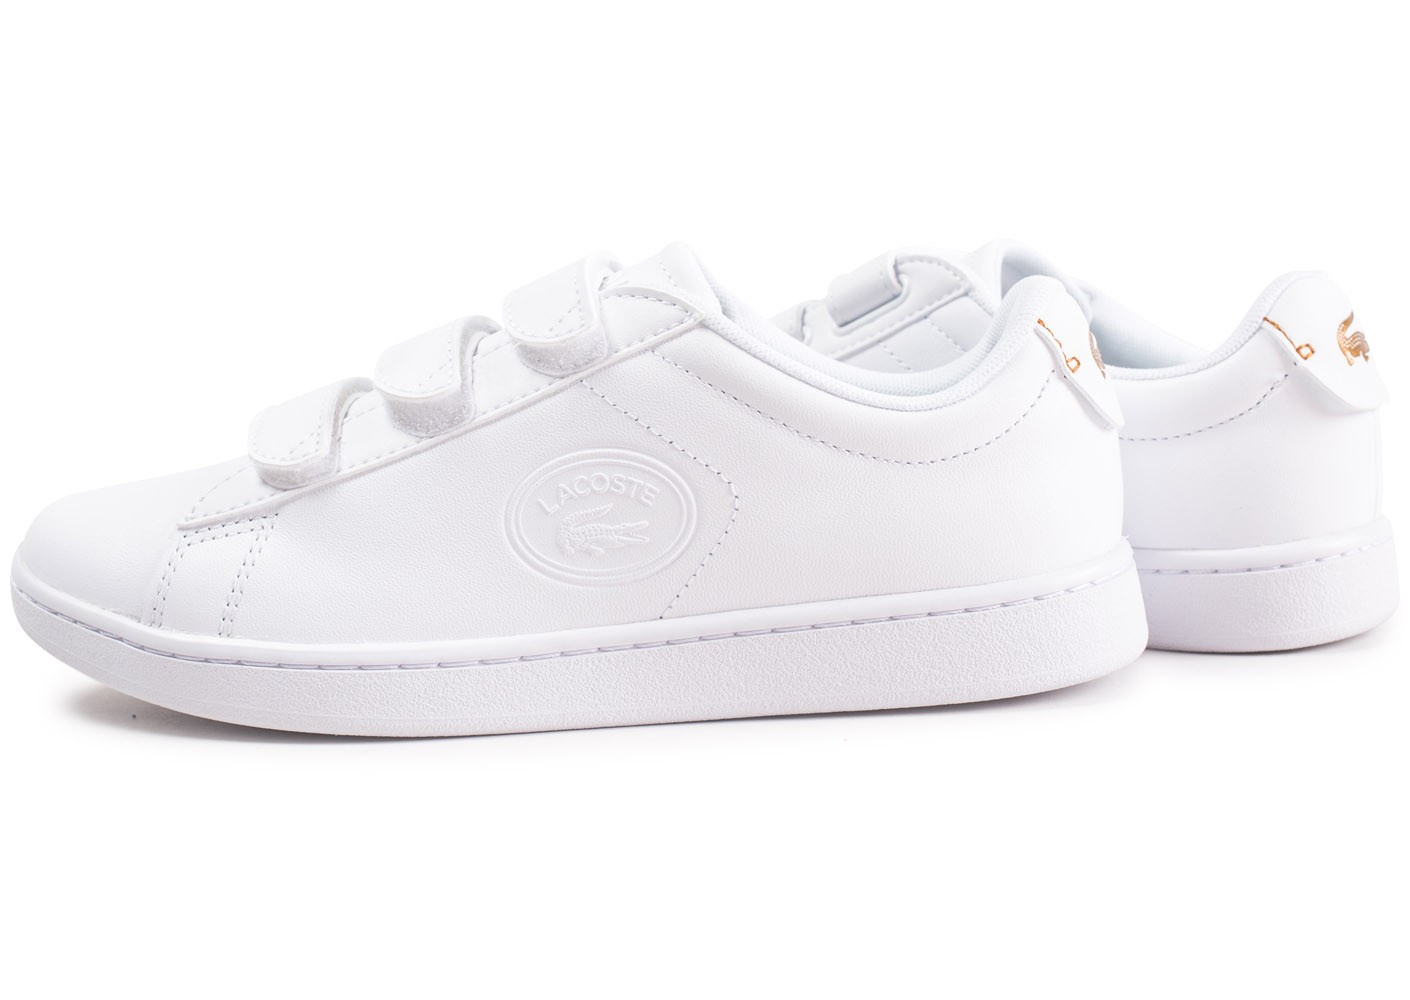 Lacoste Carnaby Evo à scratch blanche femme - Chaussures ...